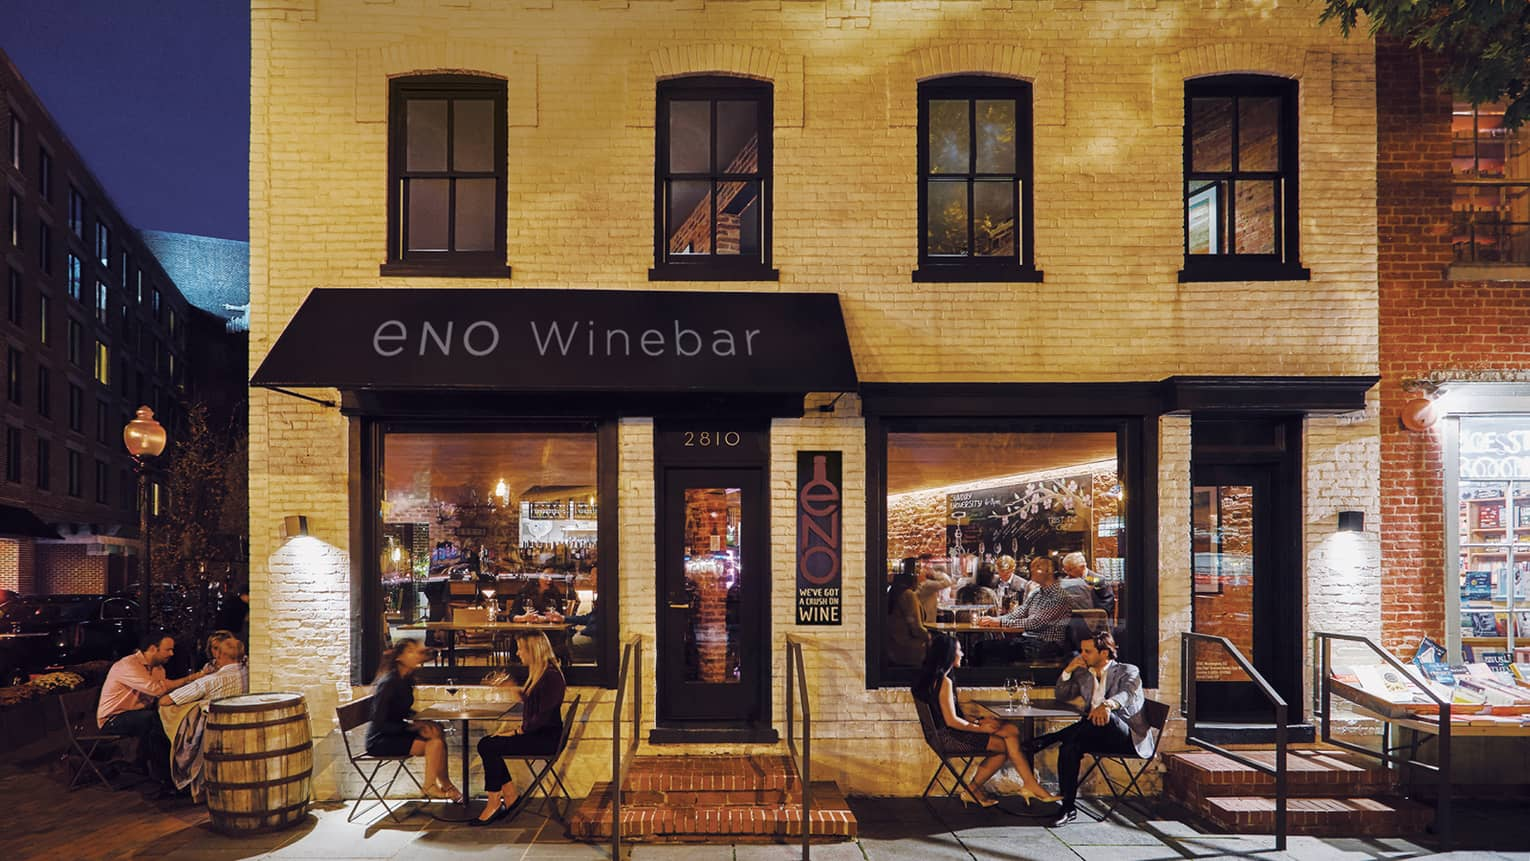 ENO Wine Bar, people dine on patio under black awning, white brick building exterior at night